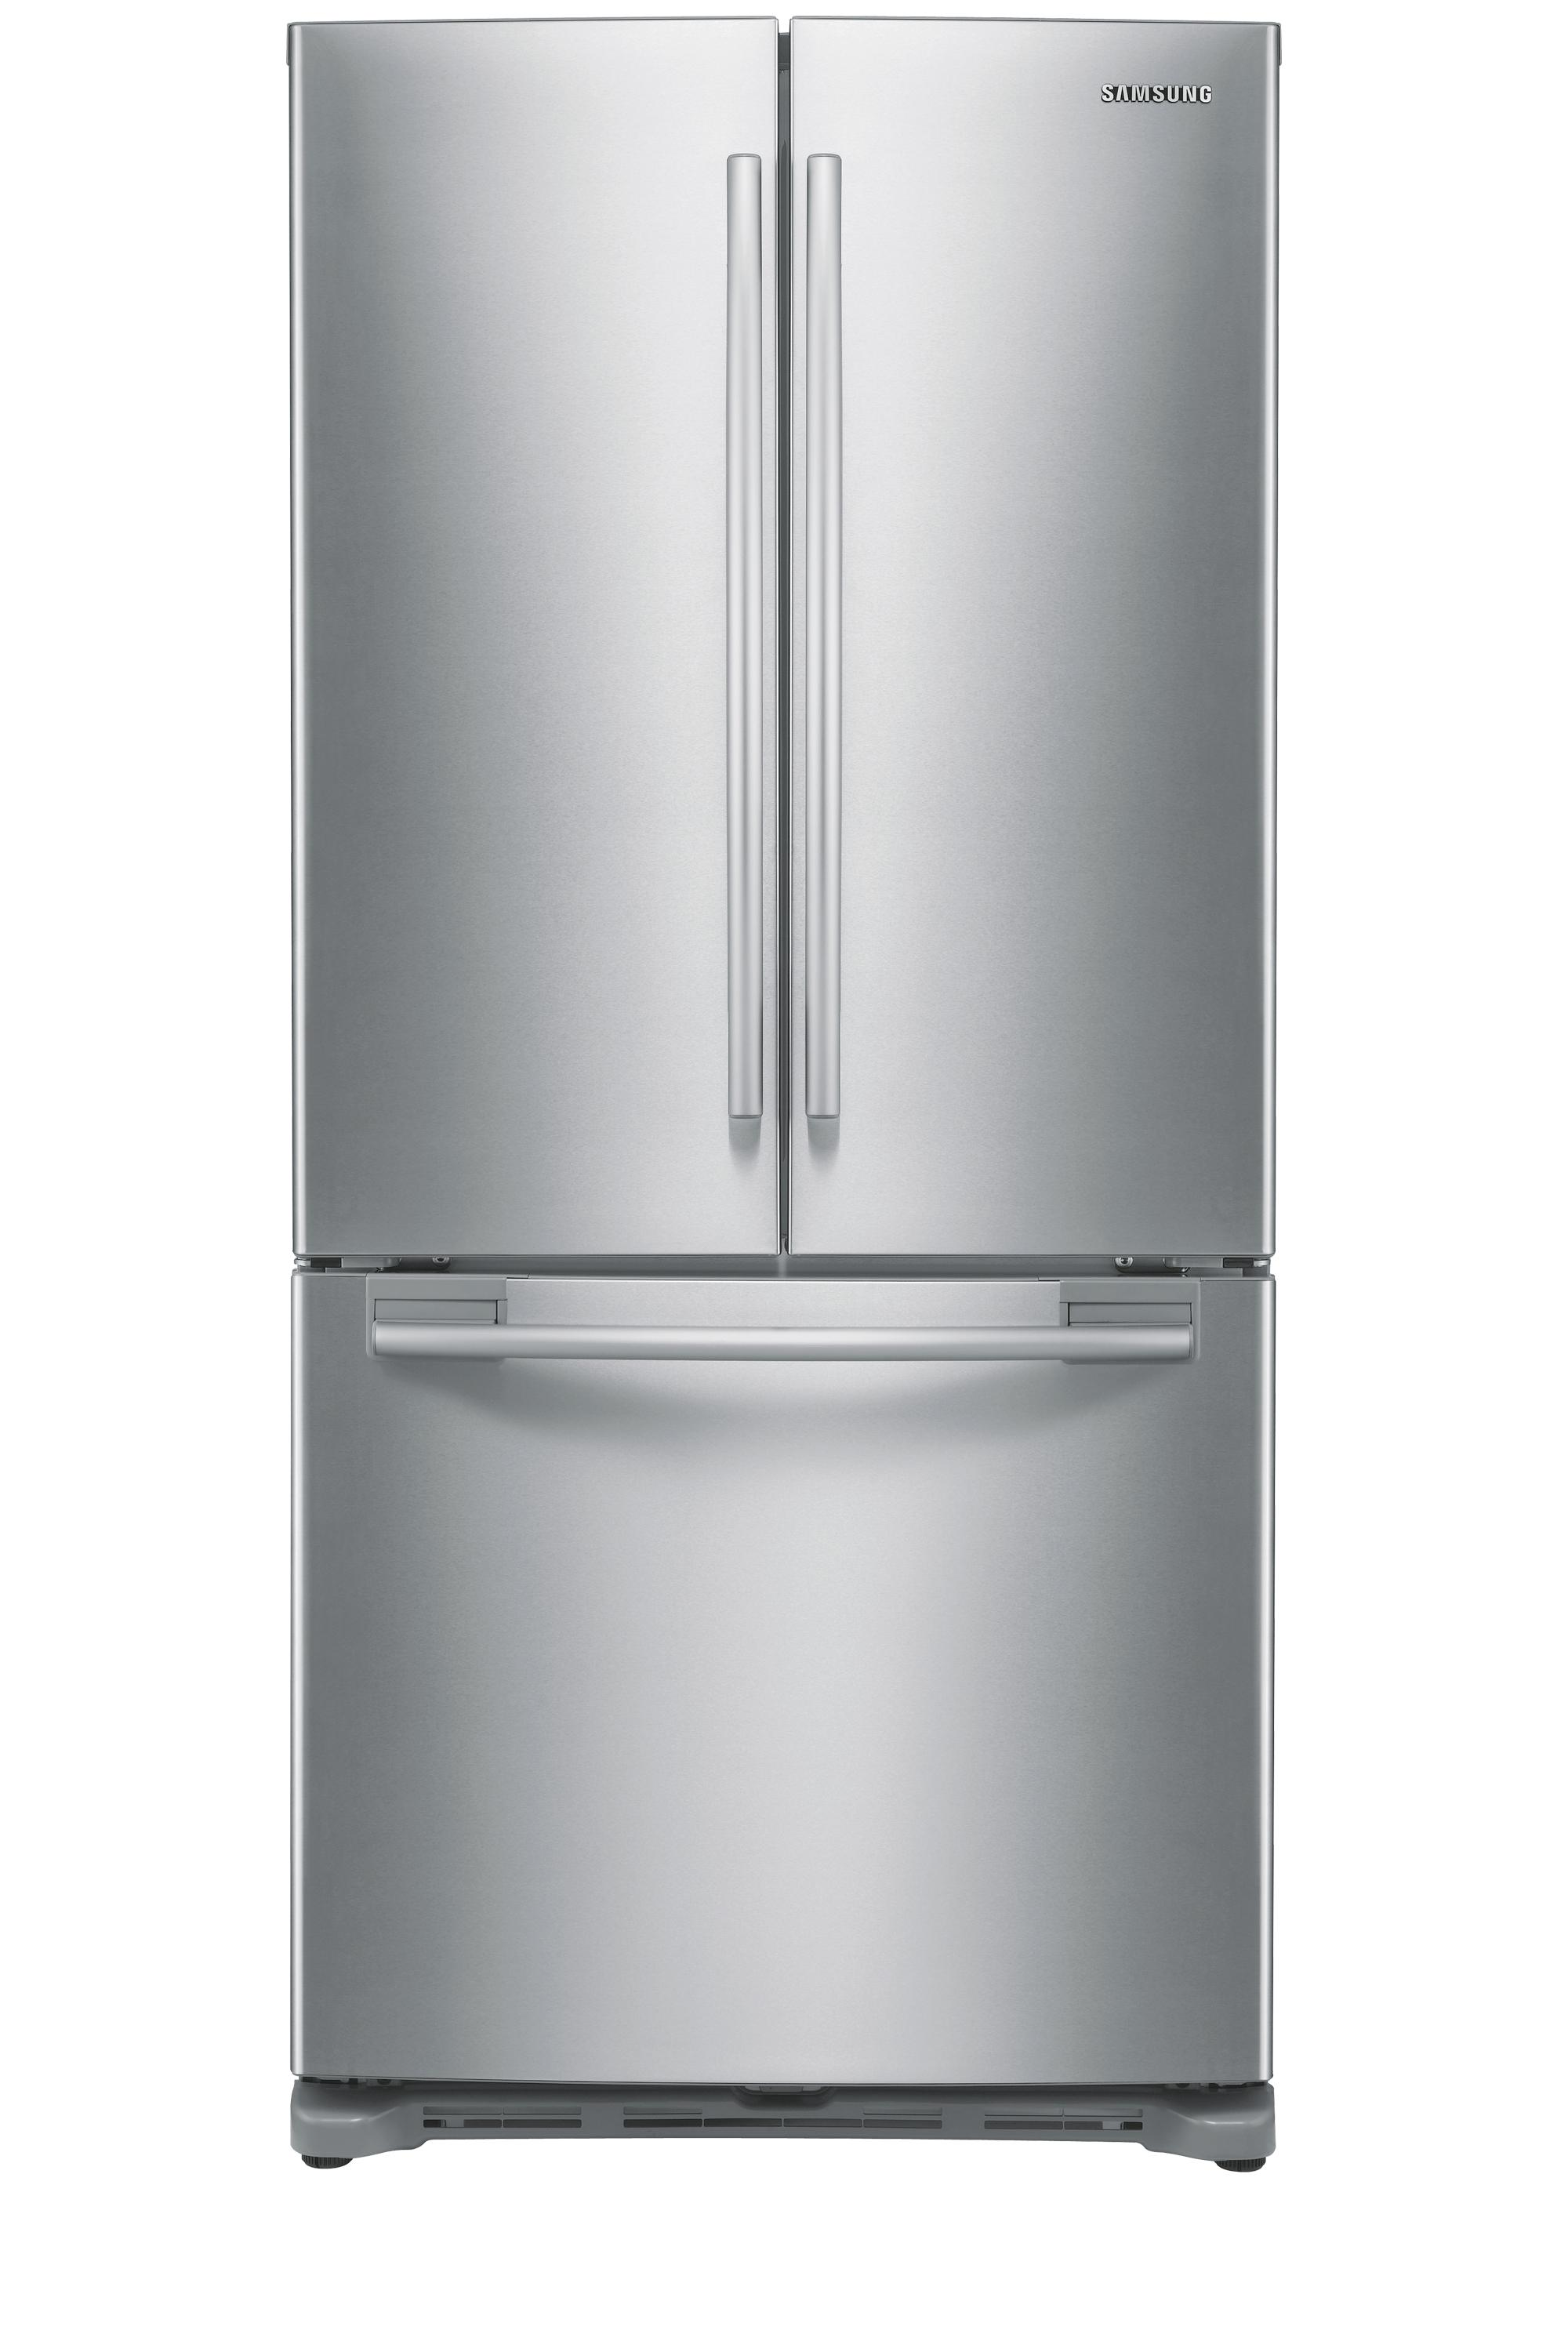 Rf197abwp Samsung Rf197abwp Bottom Freezer Refrigerators